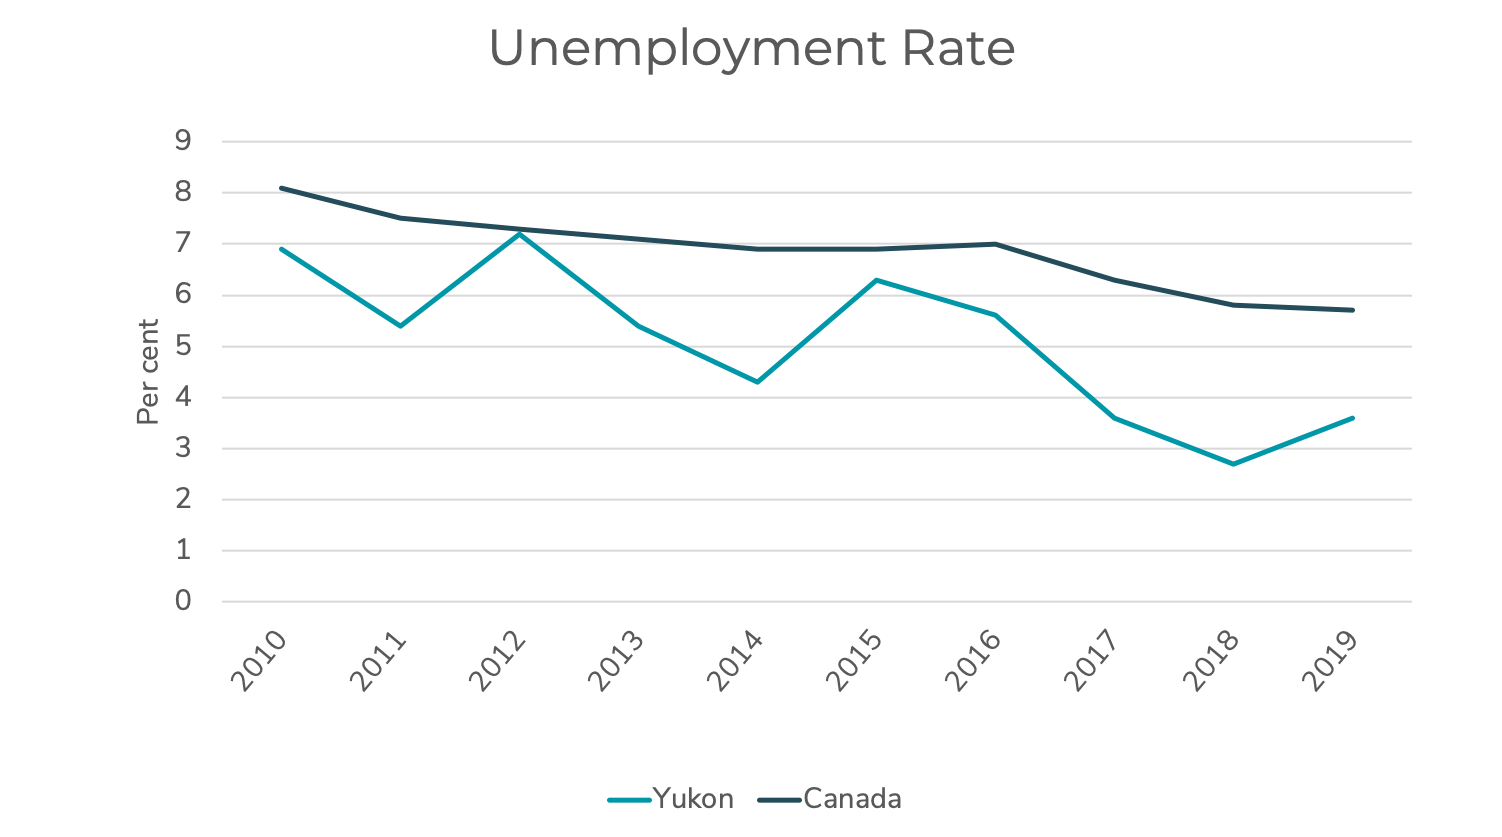 Chart showing key indicator of unemployment rate in Yukon